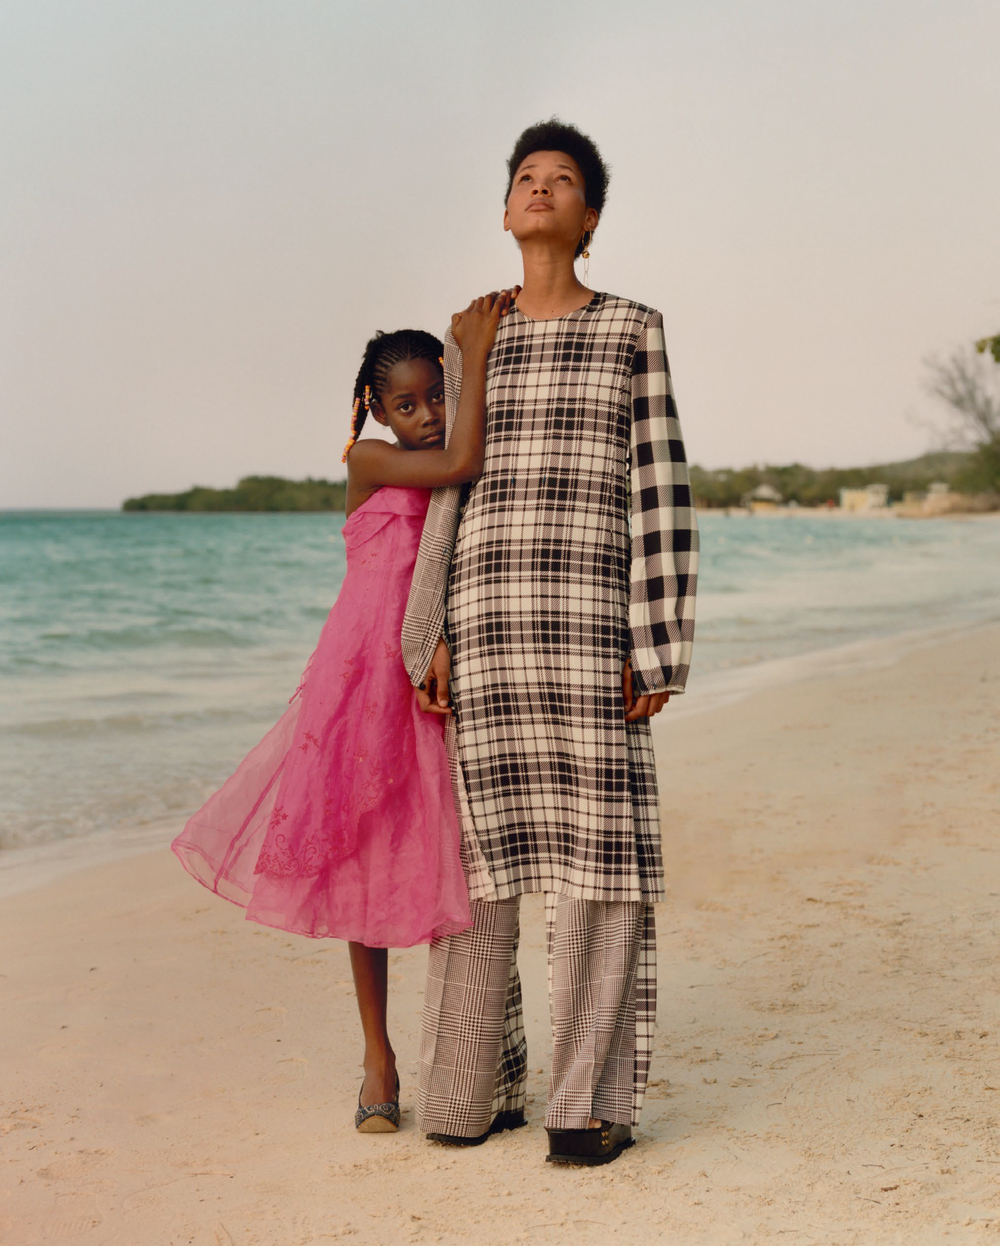 LINEISY-MONTERO-AND-TAMI-WILLIAMS-BY-JAMIE-HAWKESWORTH-FOR-VOGUE-US-JUNE-2016-6.jpg